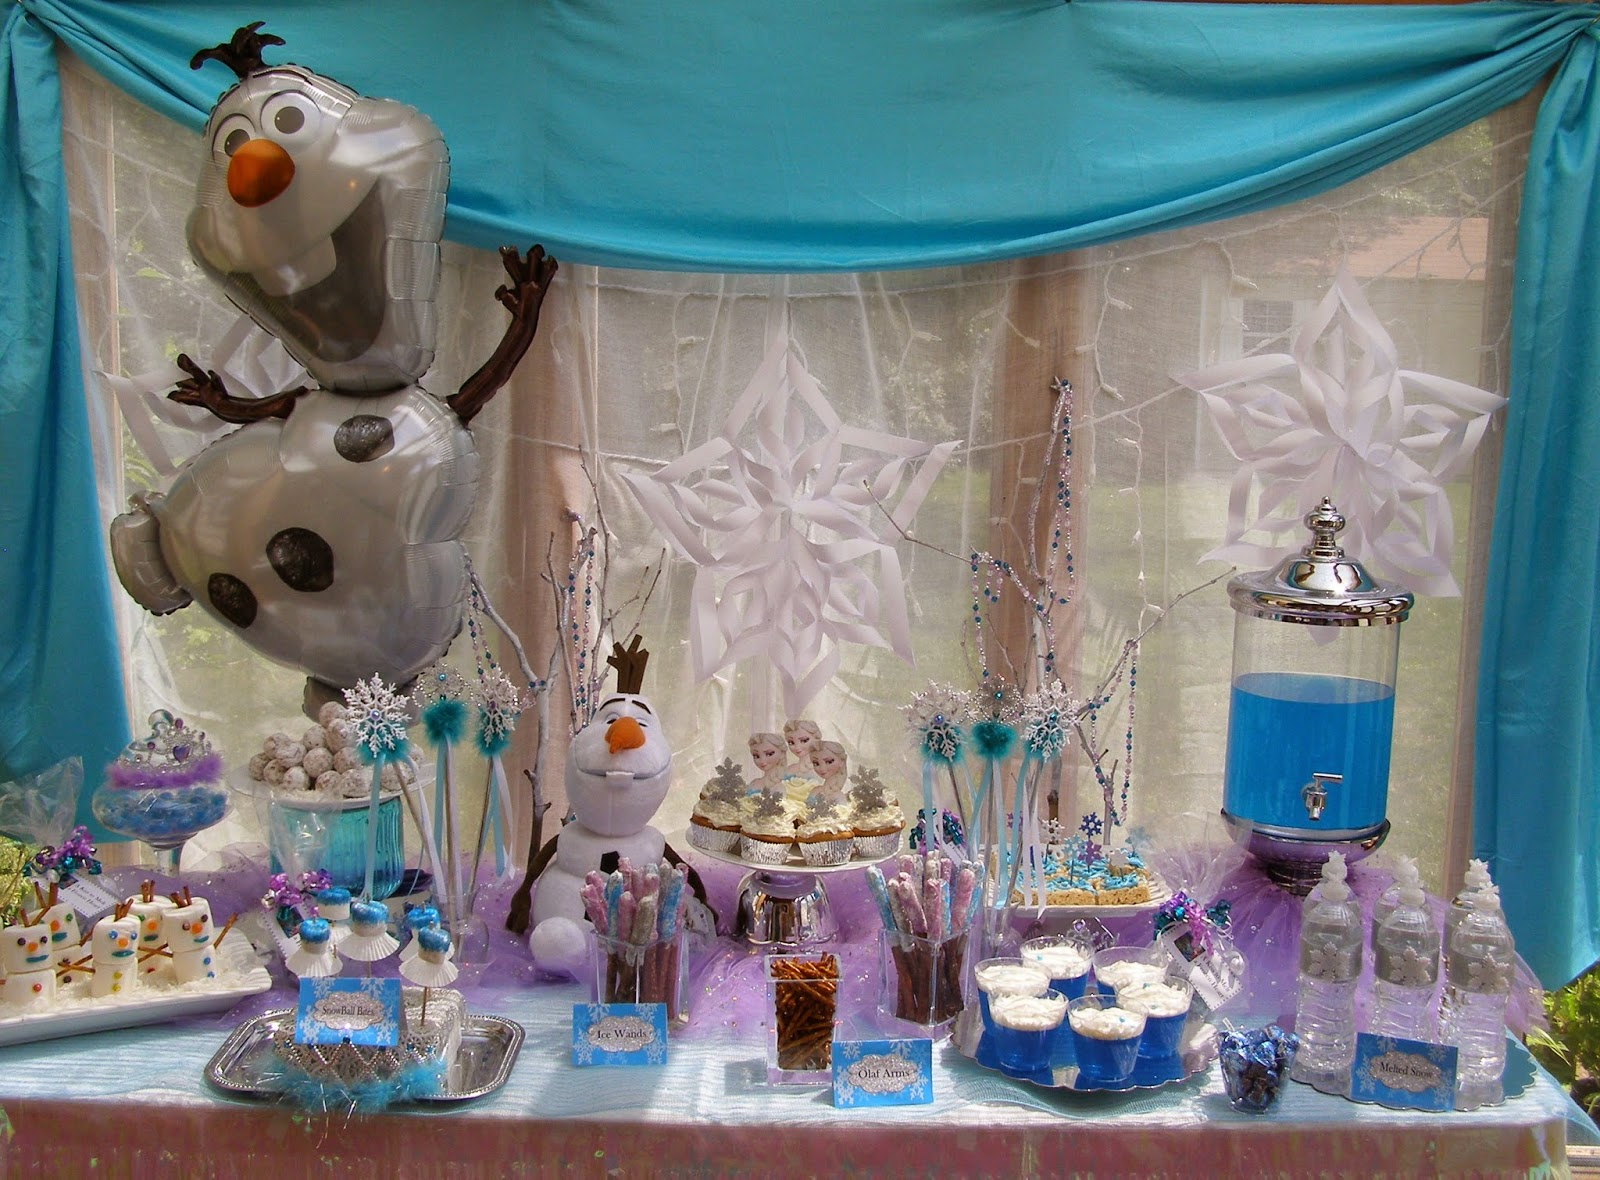 The Princess Birthday Blog: Frozen Party Food Ideas ...